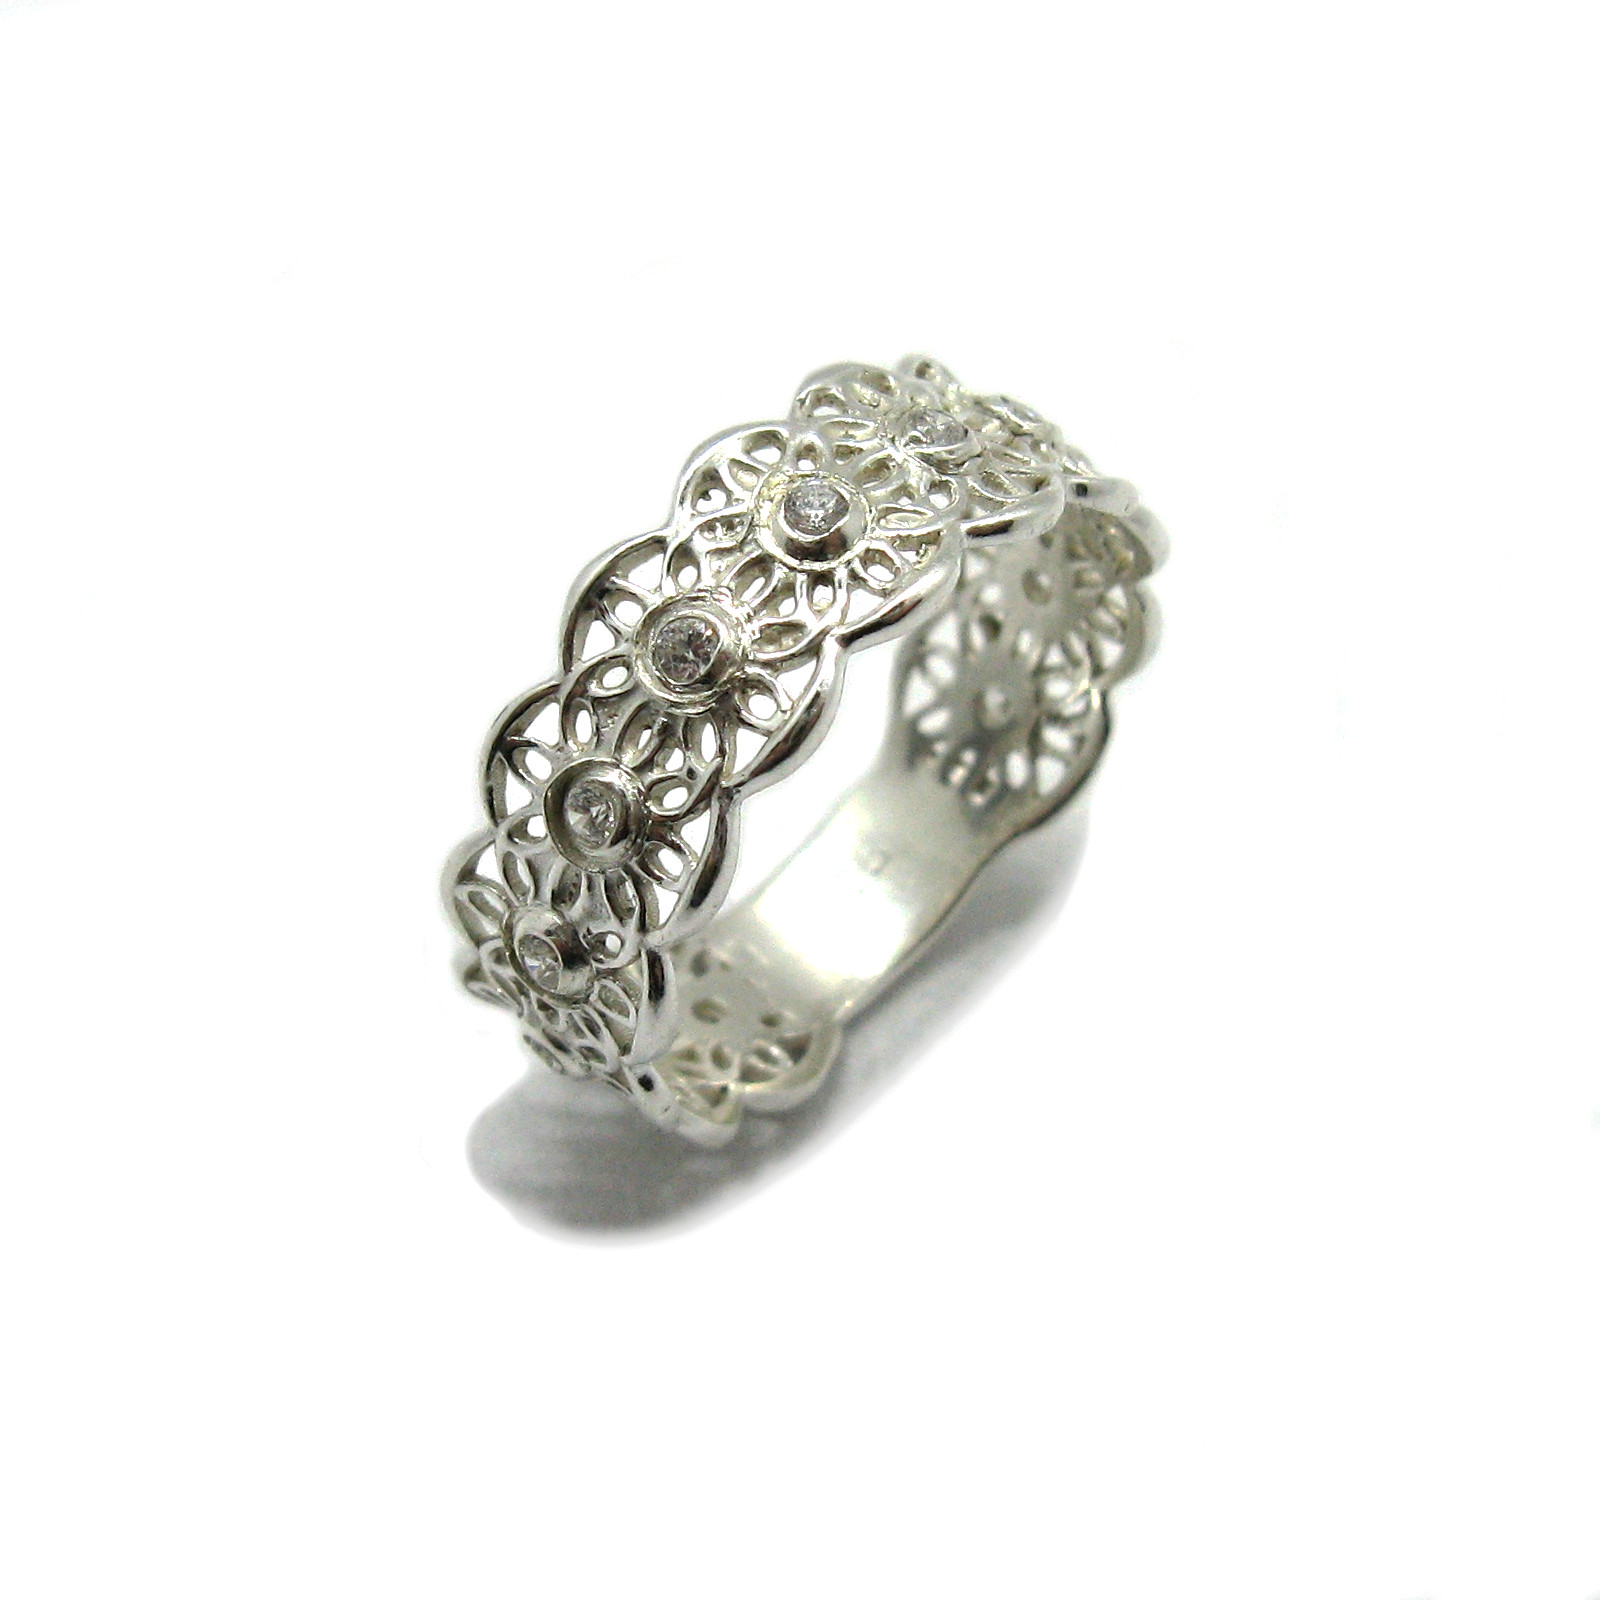 Silver ring - R001891